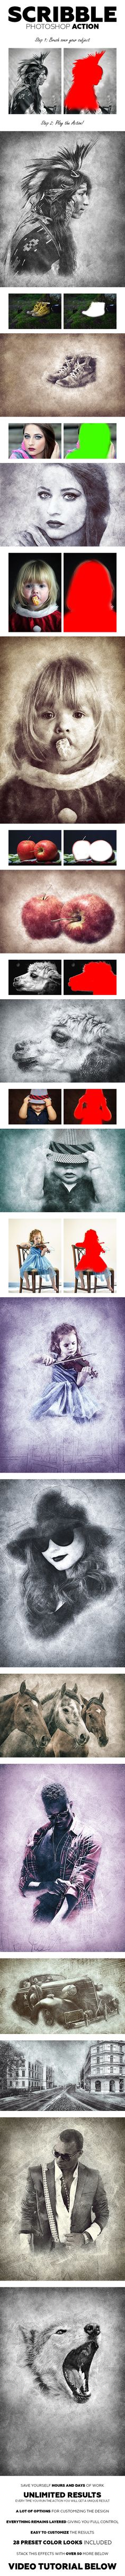 Scribble Photoshop Action  #photo effects #sketch • Download ➝ https://graphicriver.net/item/scribble-photoshop-action/18407539?ref=pxcr